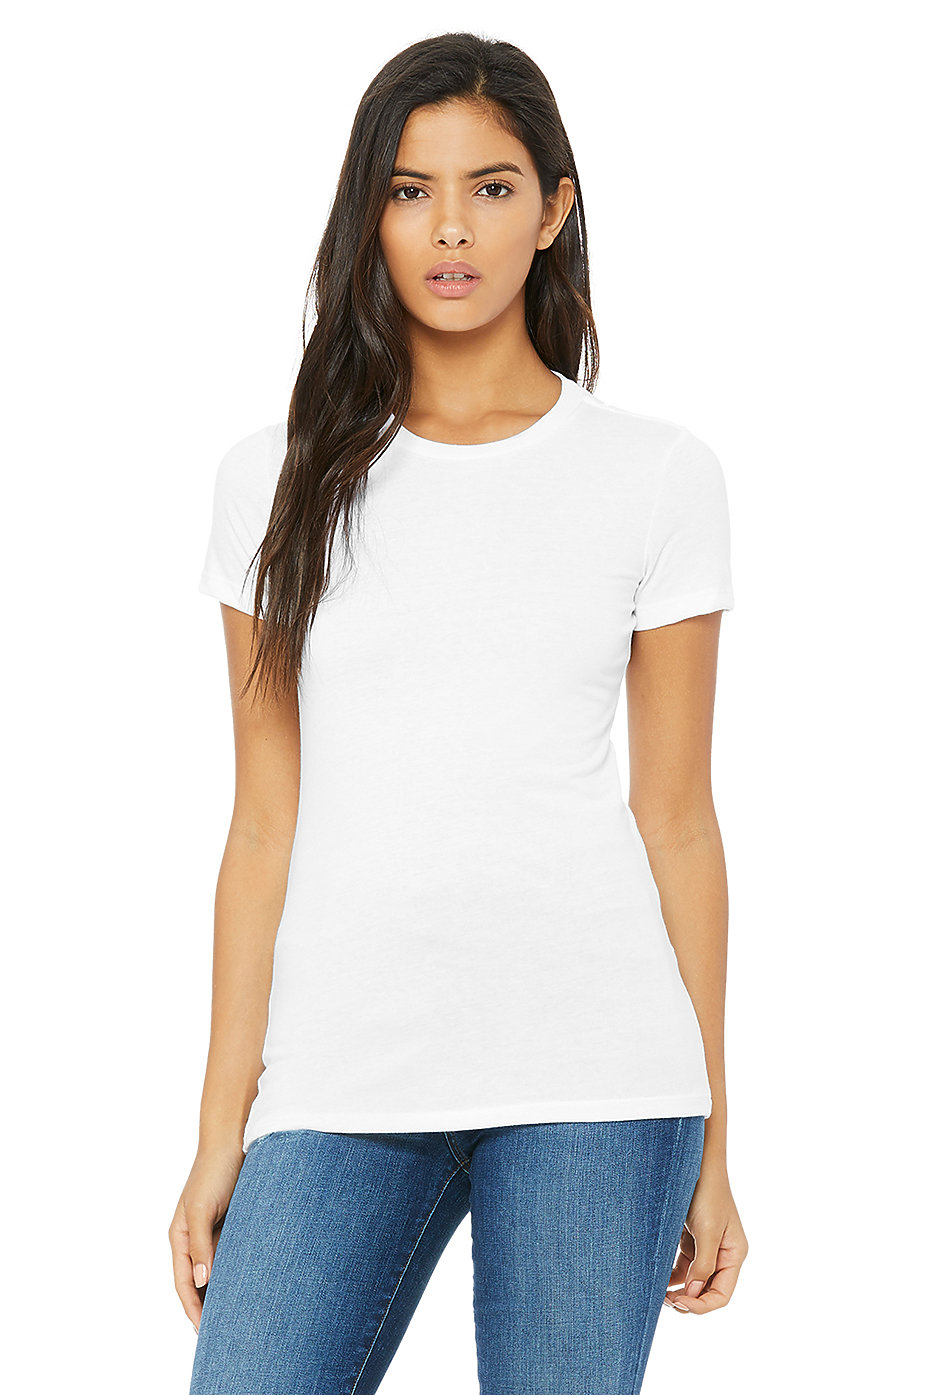 Wholesale Tee Shirts | Bulk, Plain Blank T Shirts | Womens